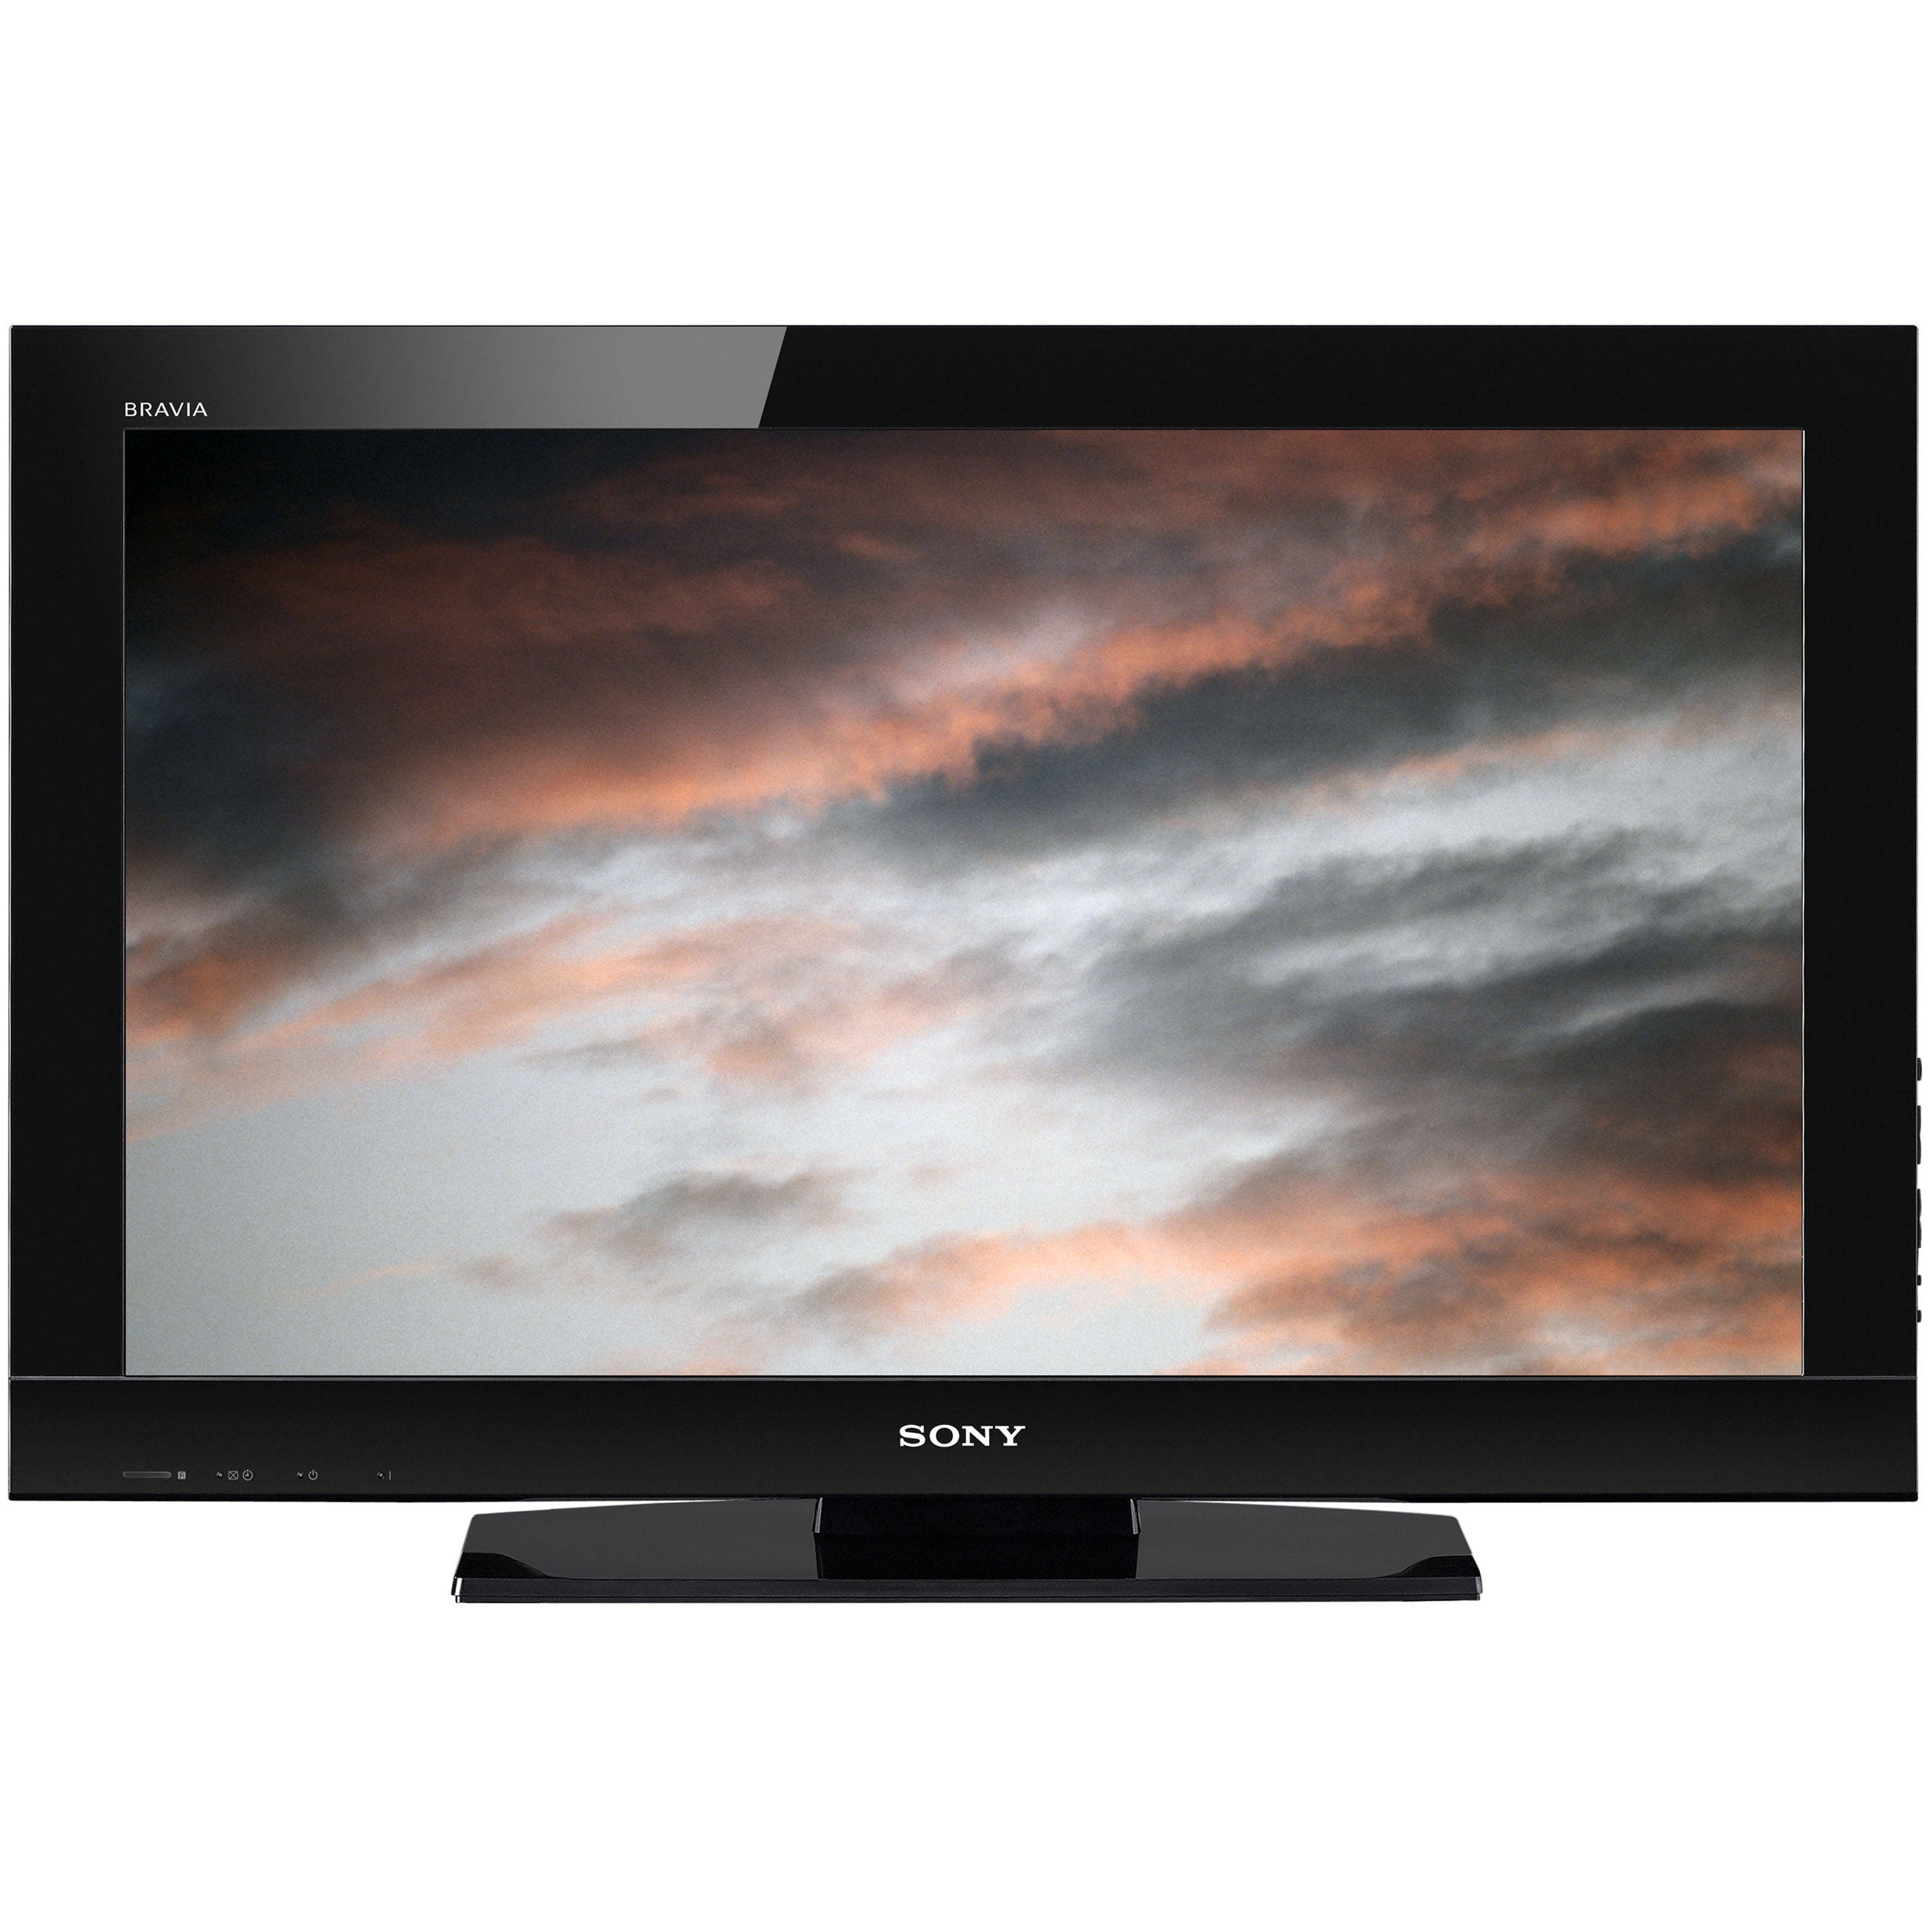 Sony KDL-46HX758 BRAVIA HDTV Windows 8 X64 Driver Download